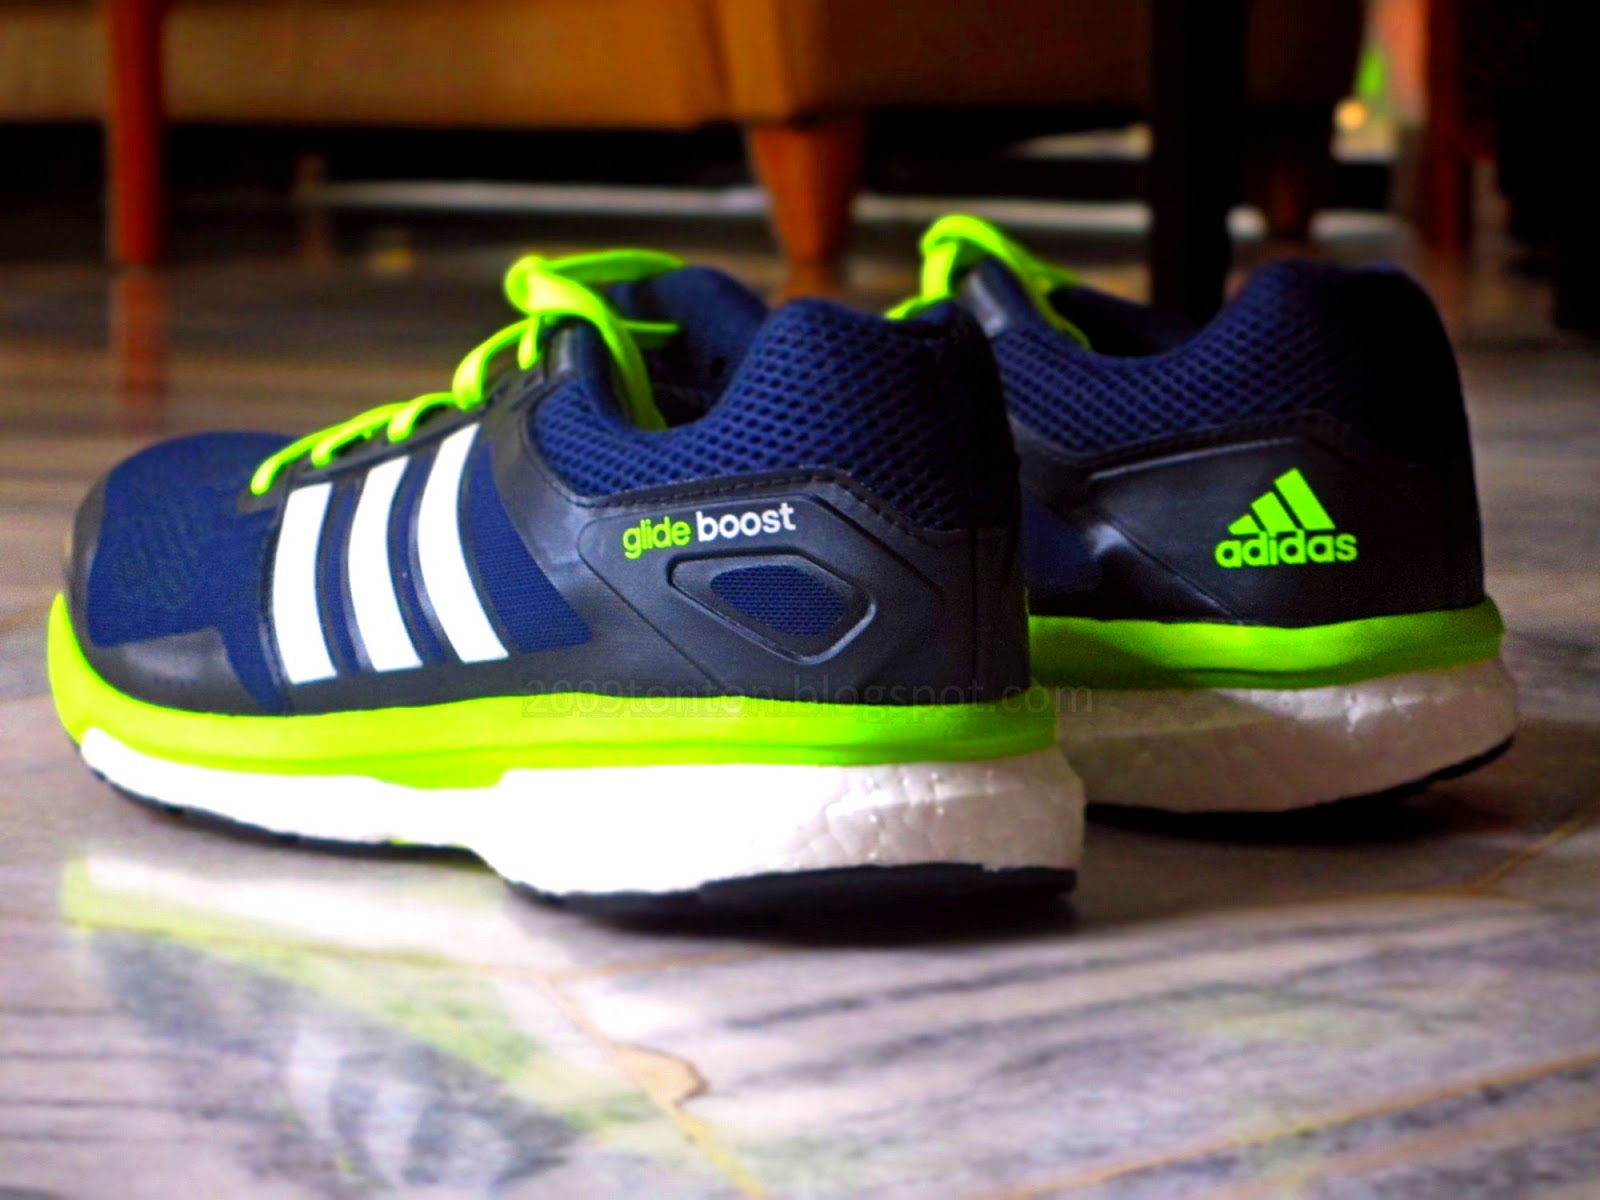 ... adidas glide boost 7 review 38c531ed9b15d